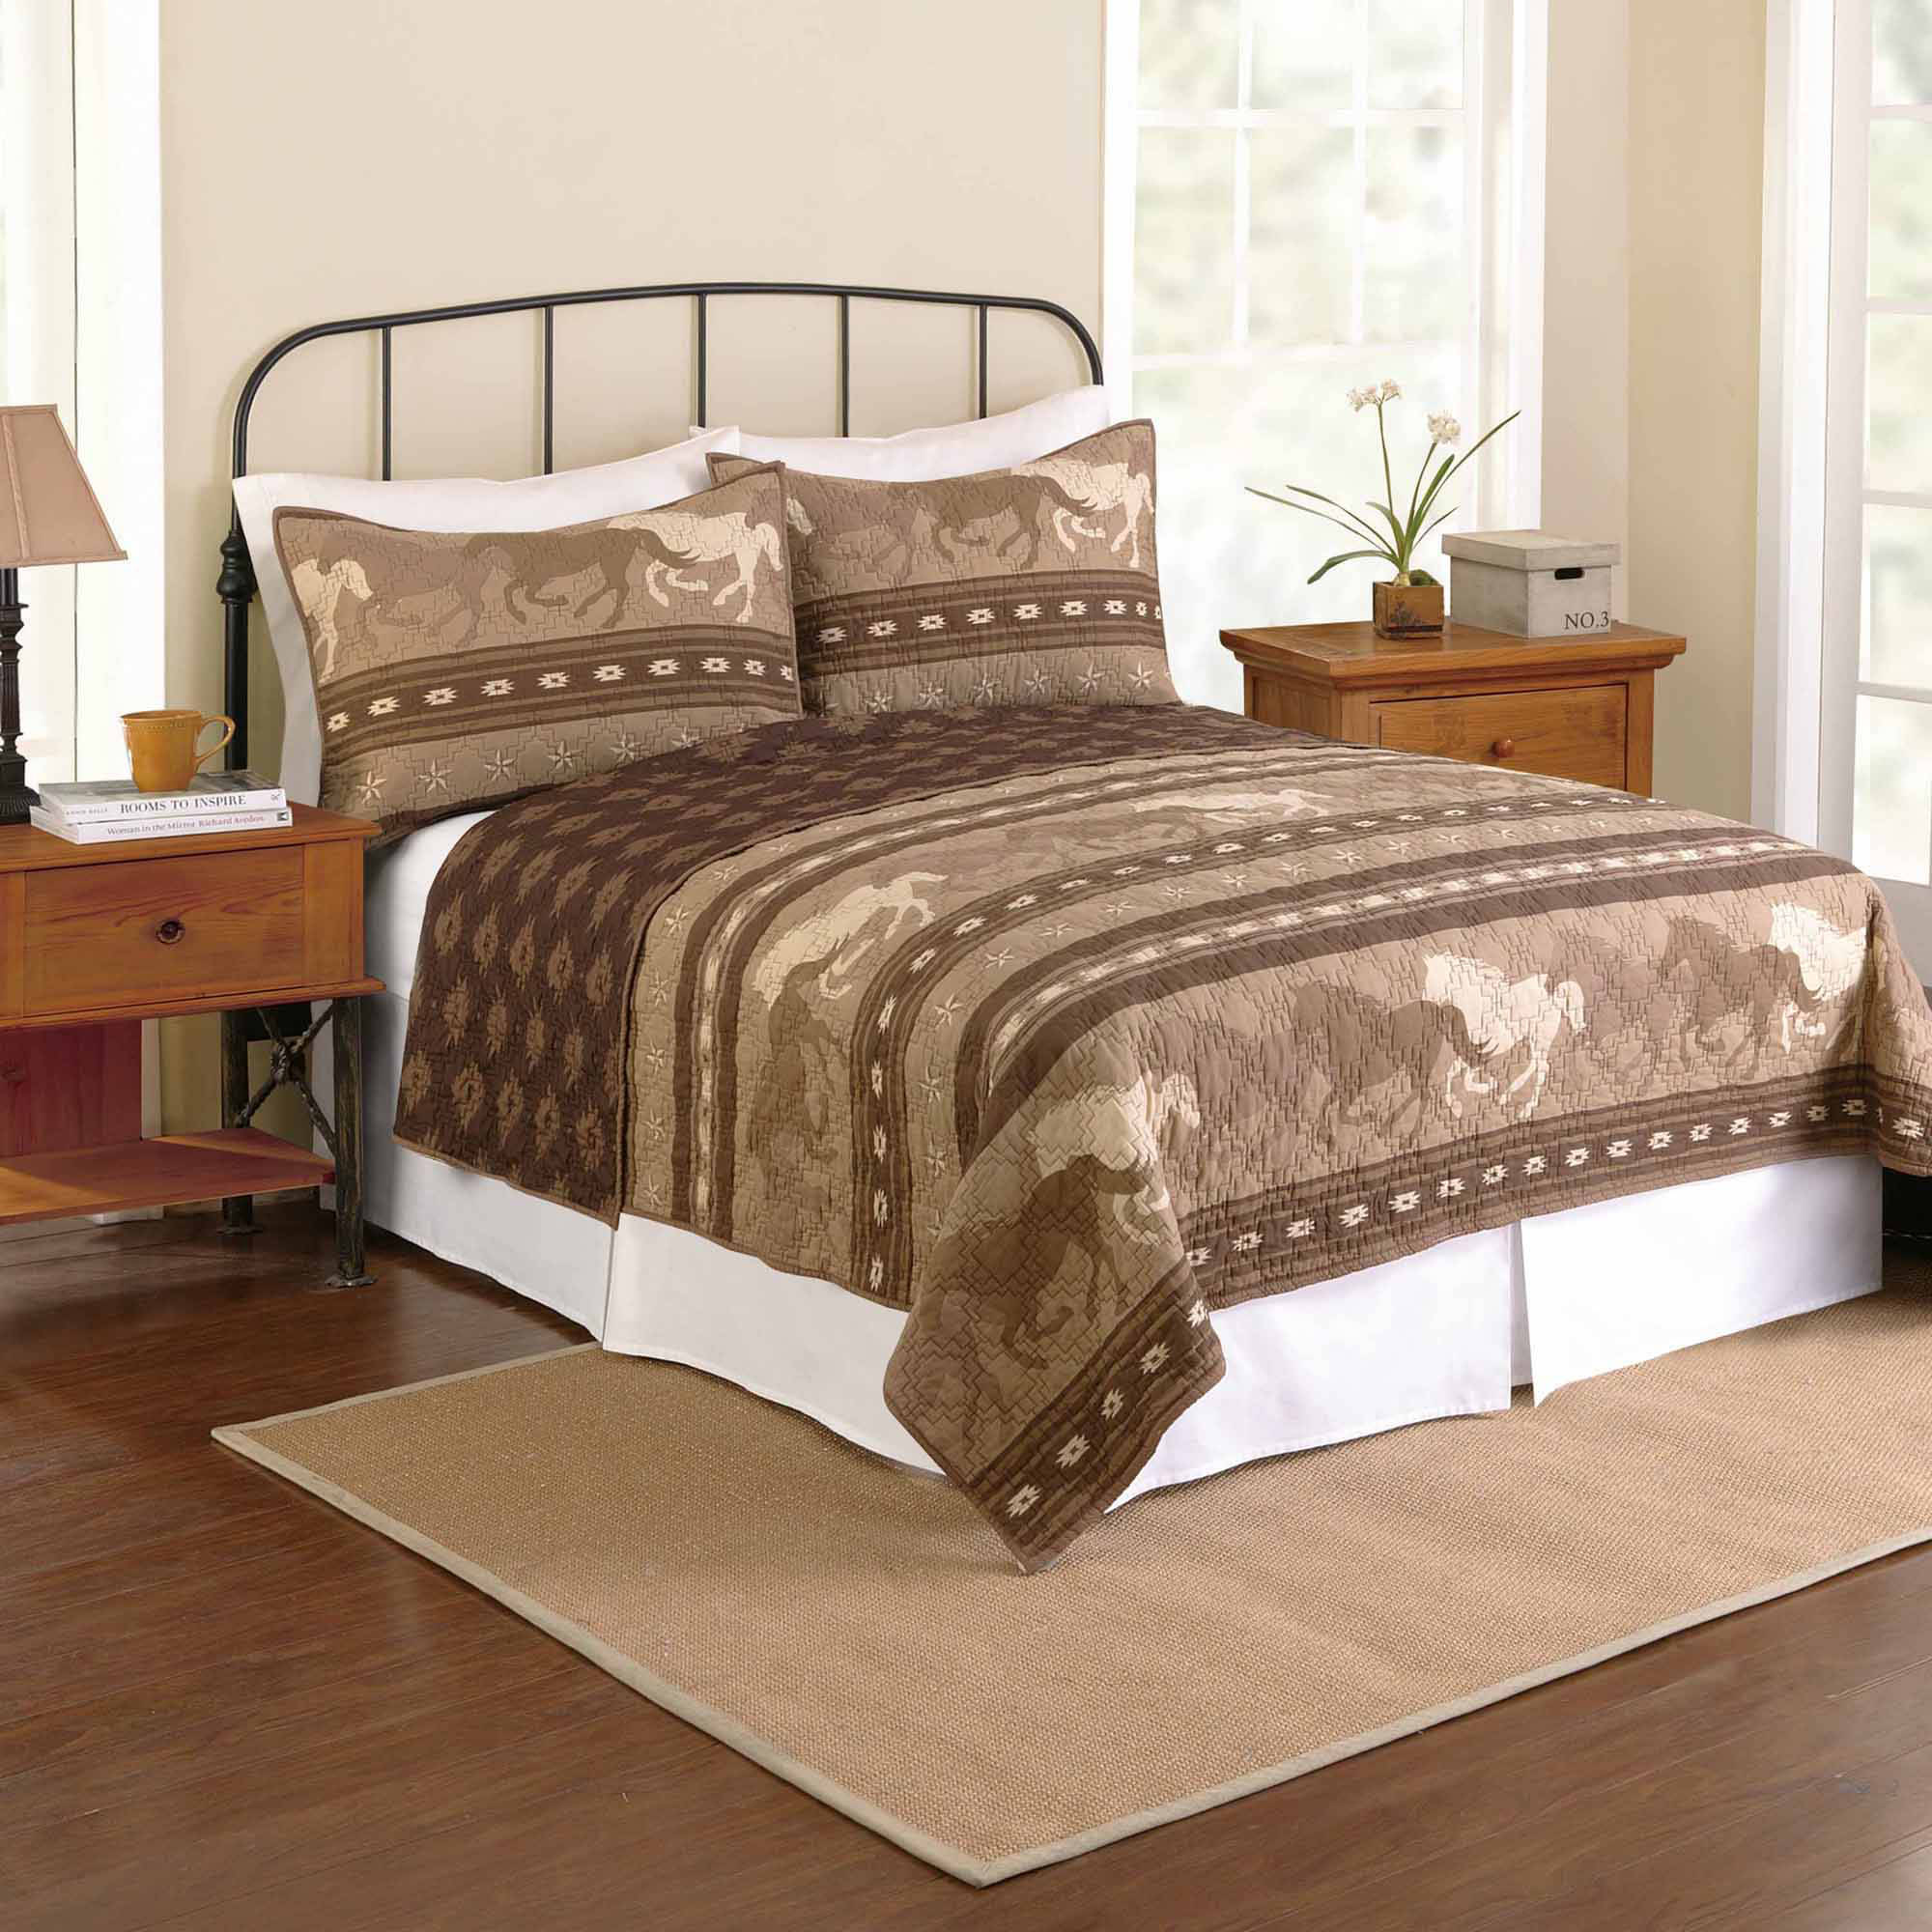 Better Homes and Gardens Texas Horse Bedding Quilt, Brown - Walmart.com